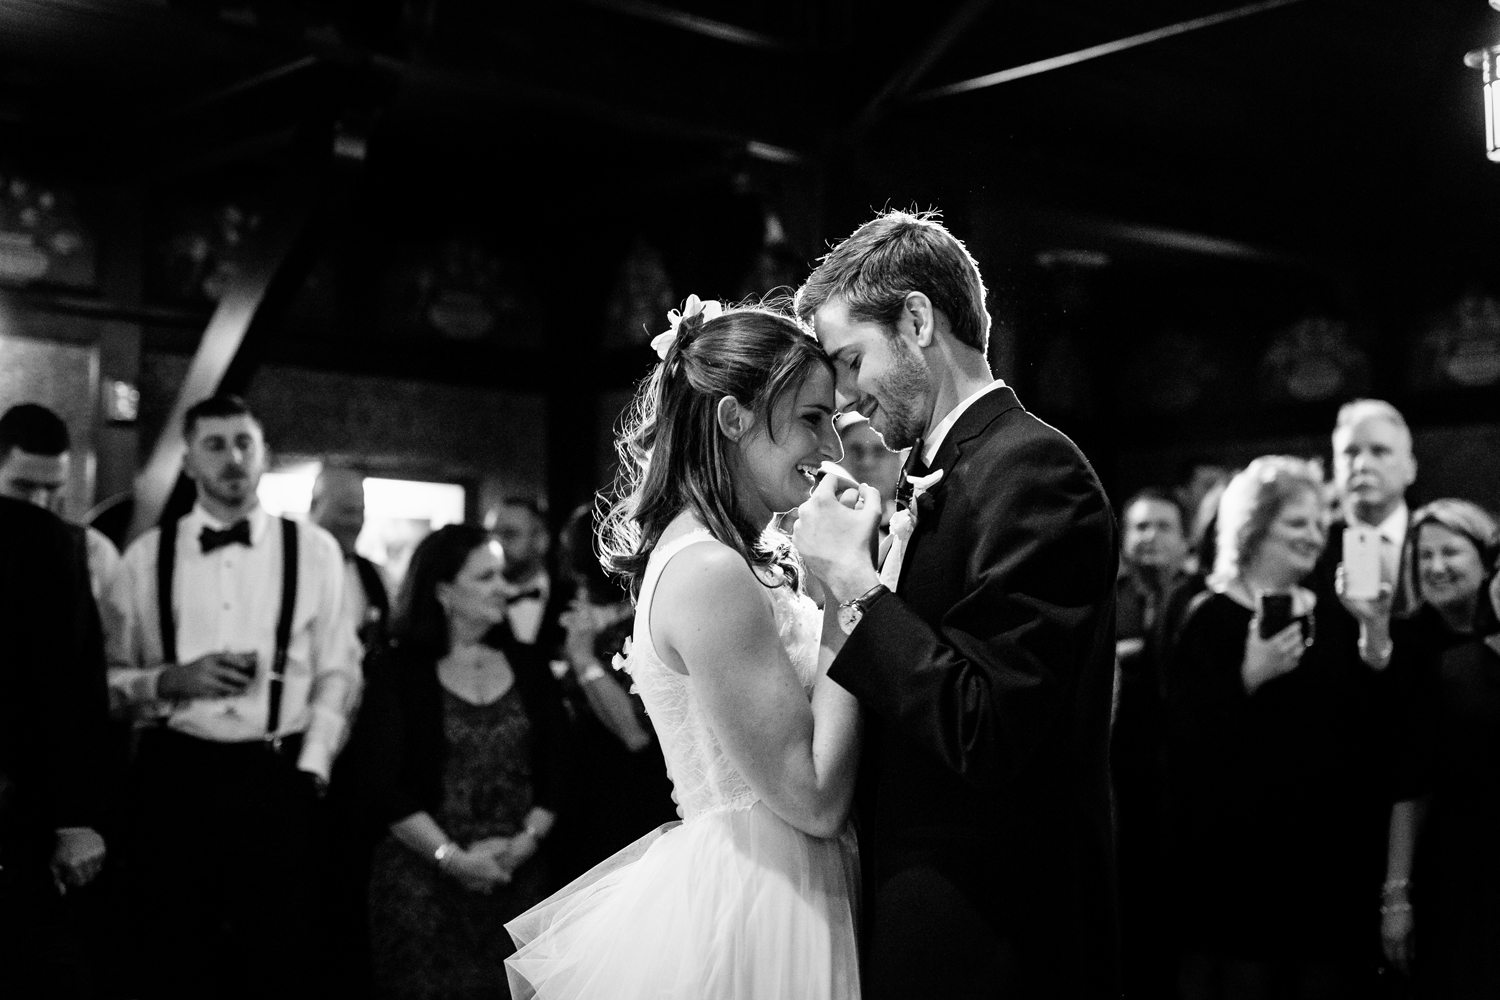 albany ny wedding photographer36.jpg